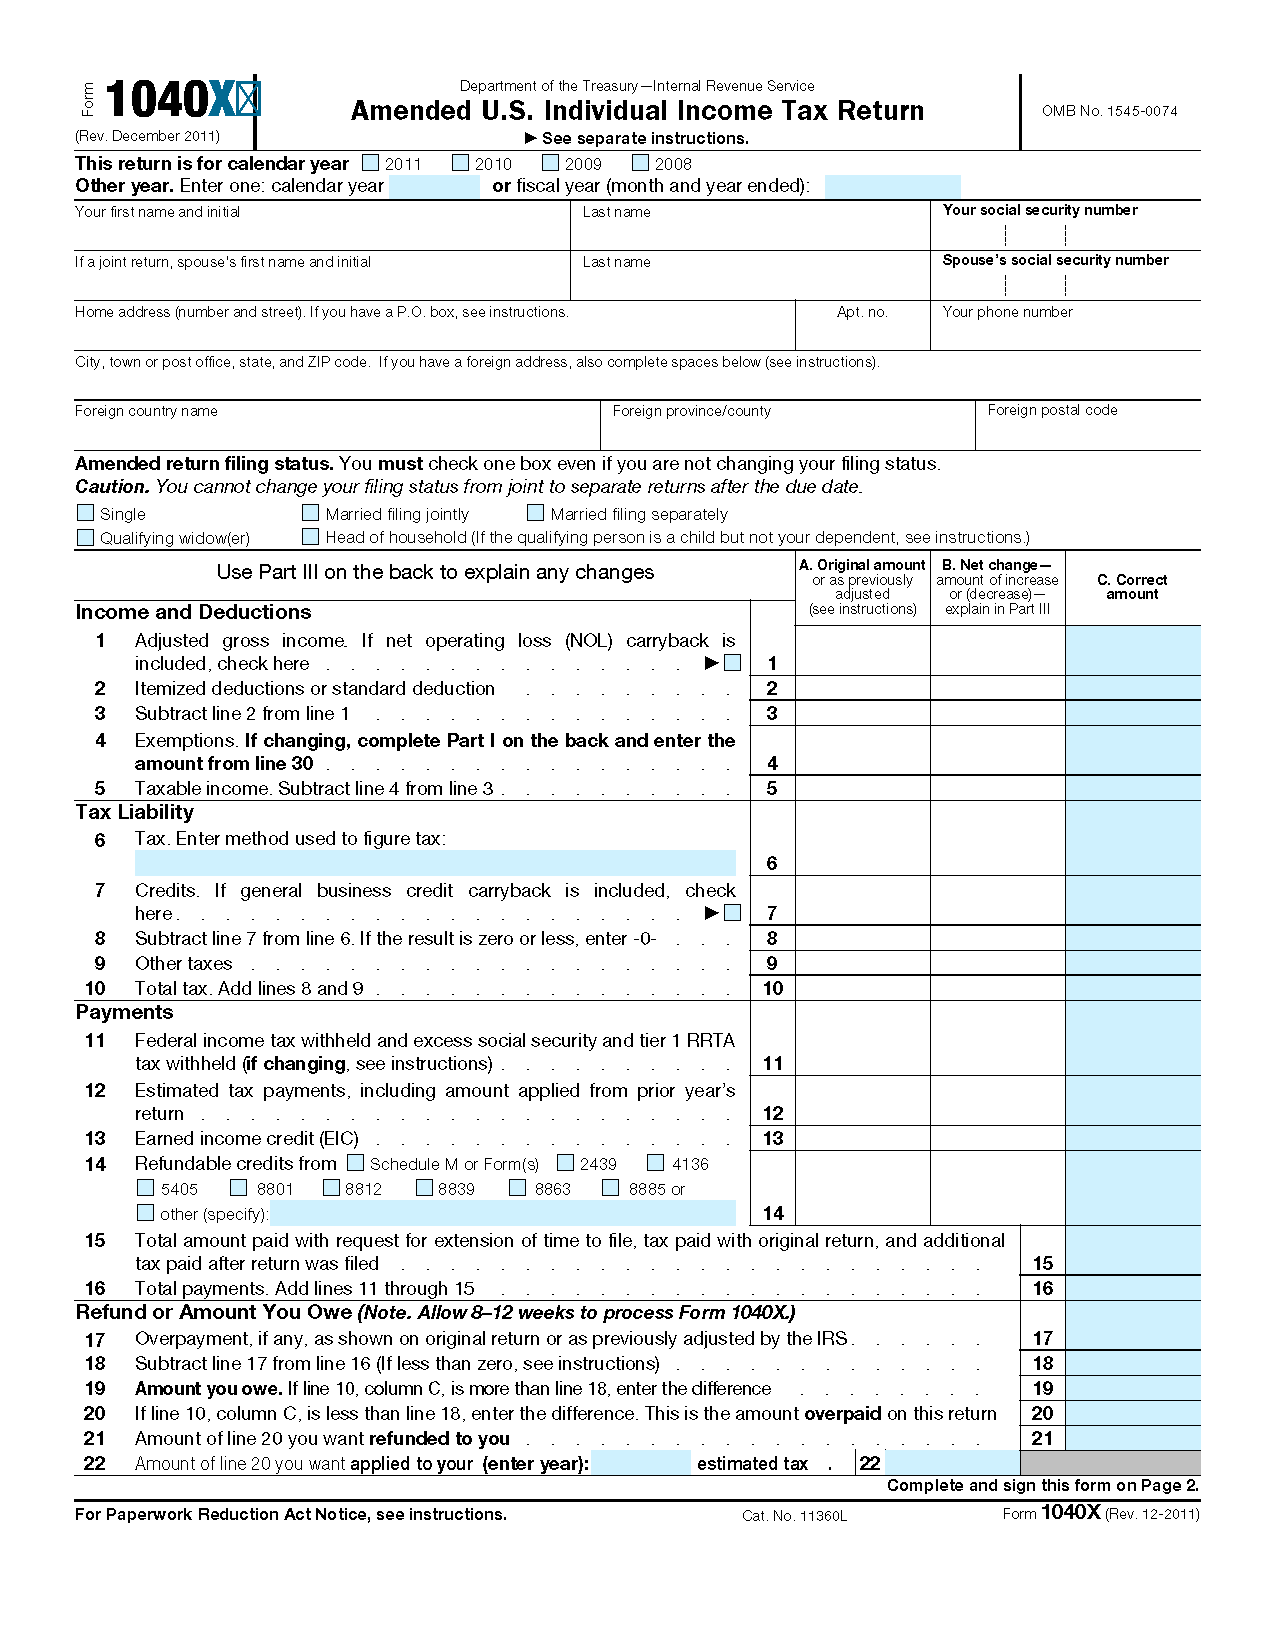 Form 1040 X Amended Us Individual Income Tax Return